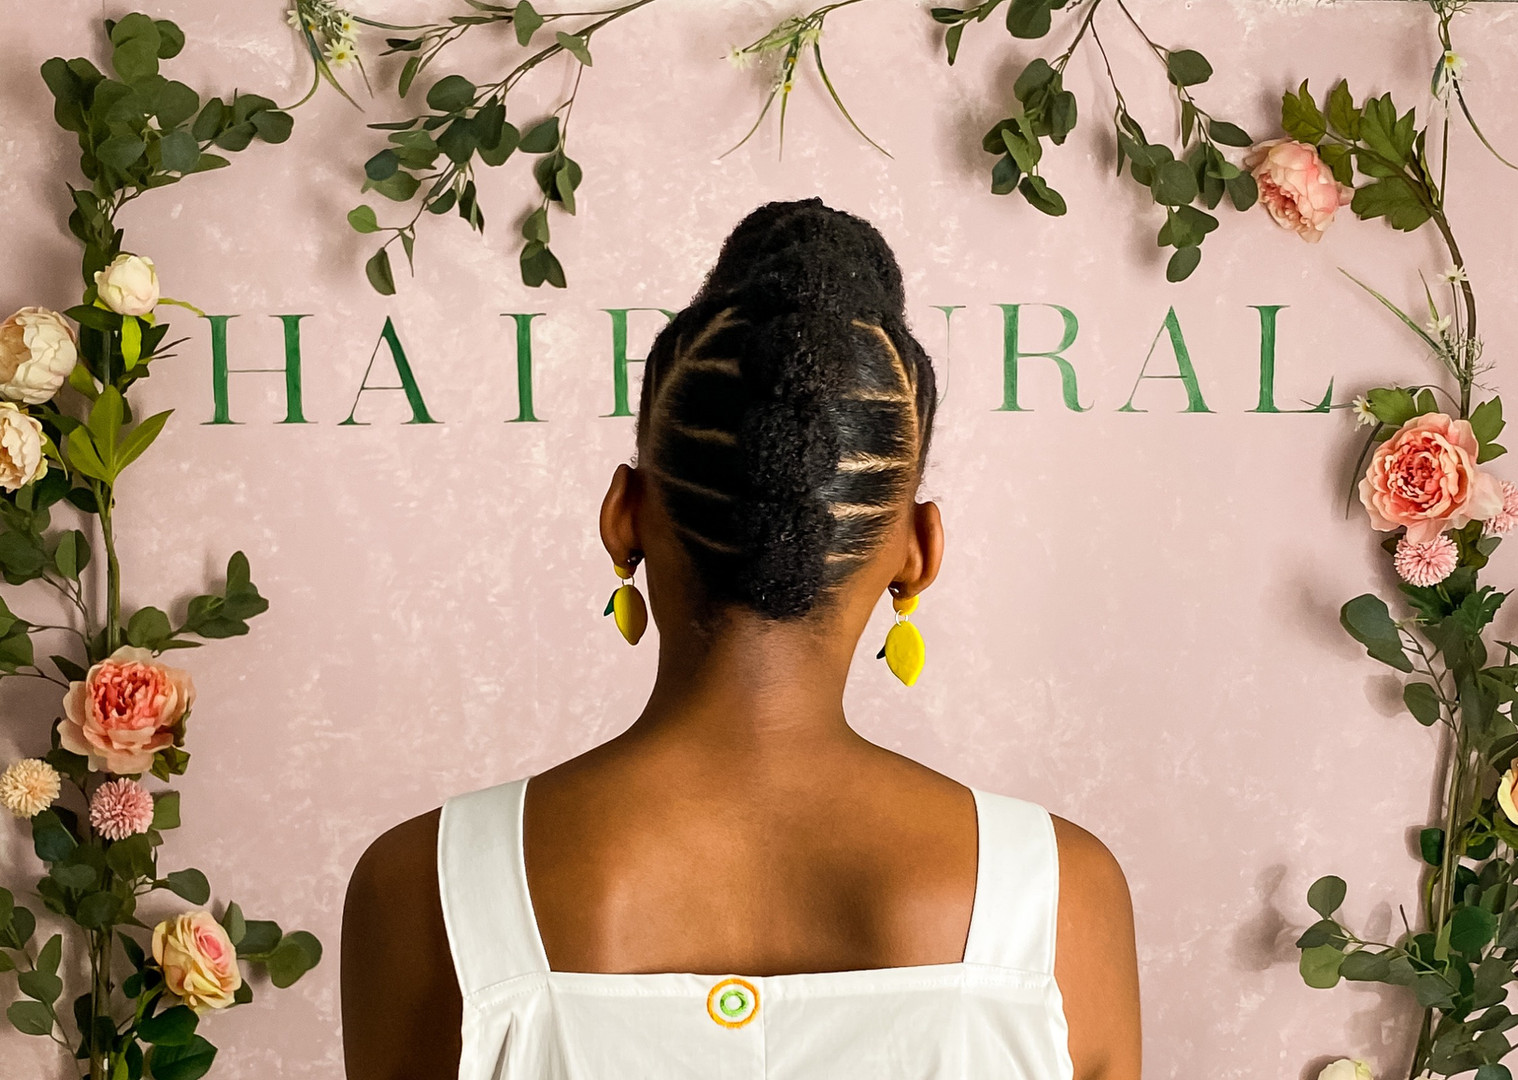 Hairtural Hairstyle